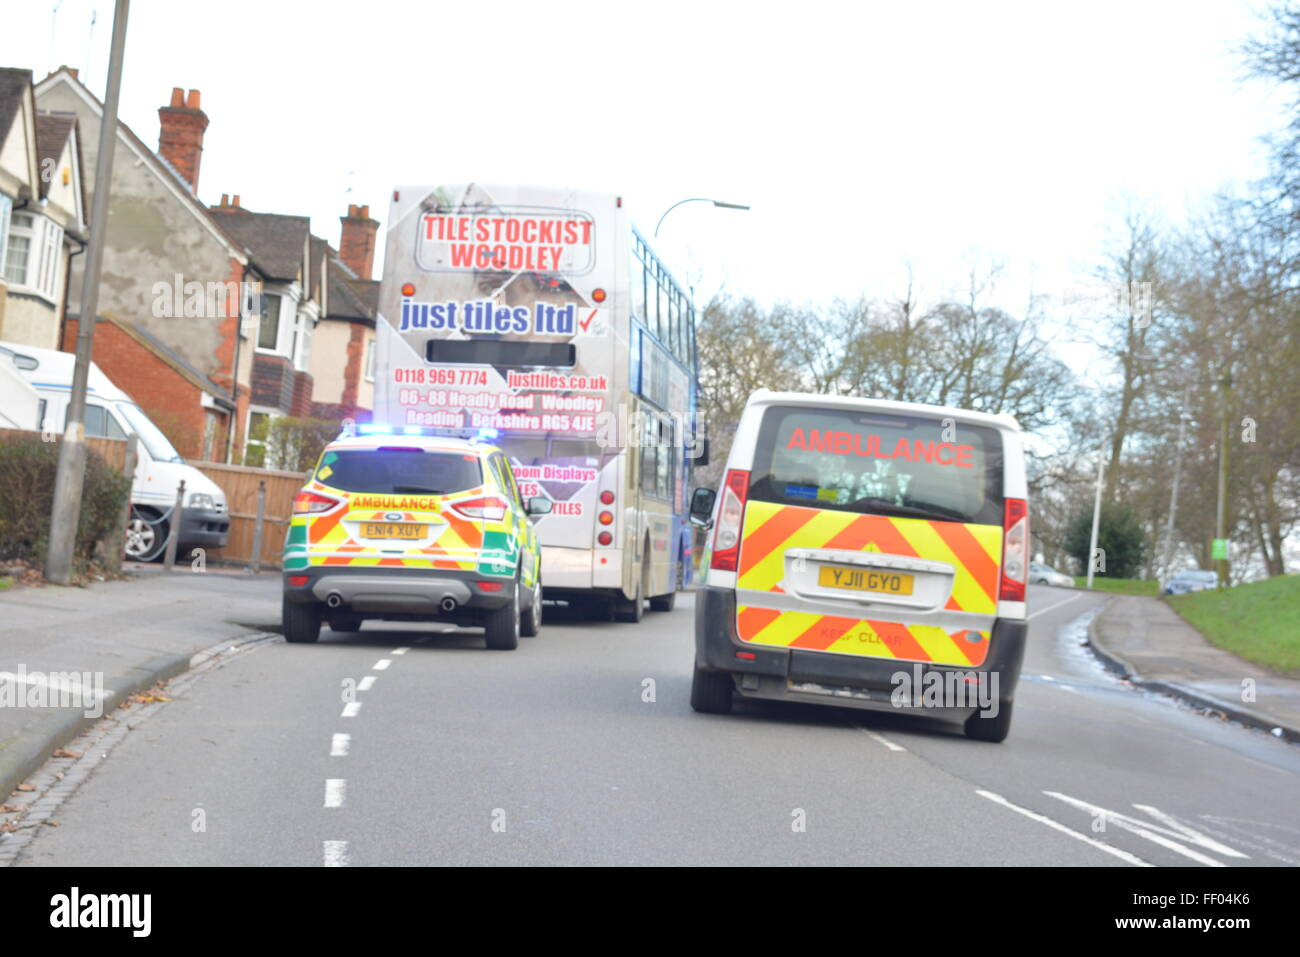 Woman suffers head injury in Tilehurst Road, Reading, Berkshire after bus collides with car. Charles Dye / Alamy Stock Photo